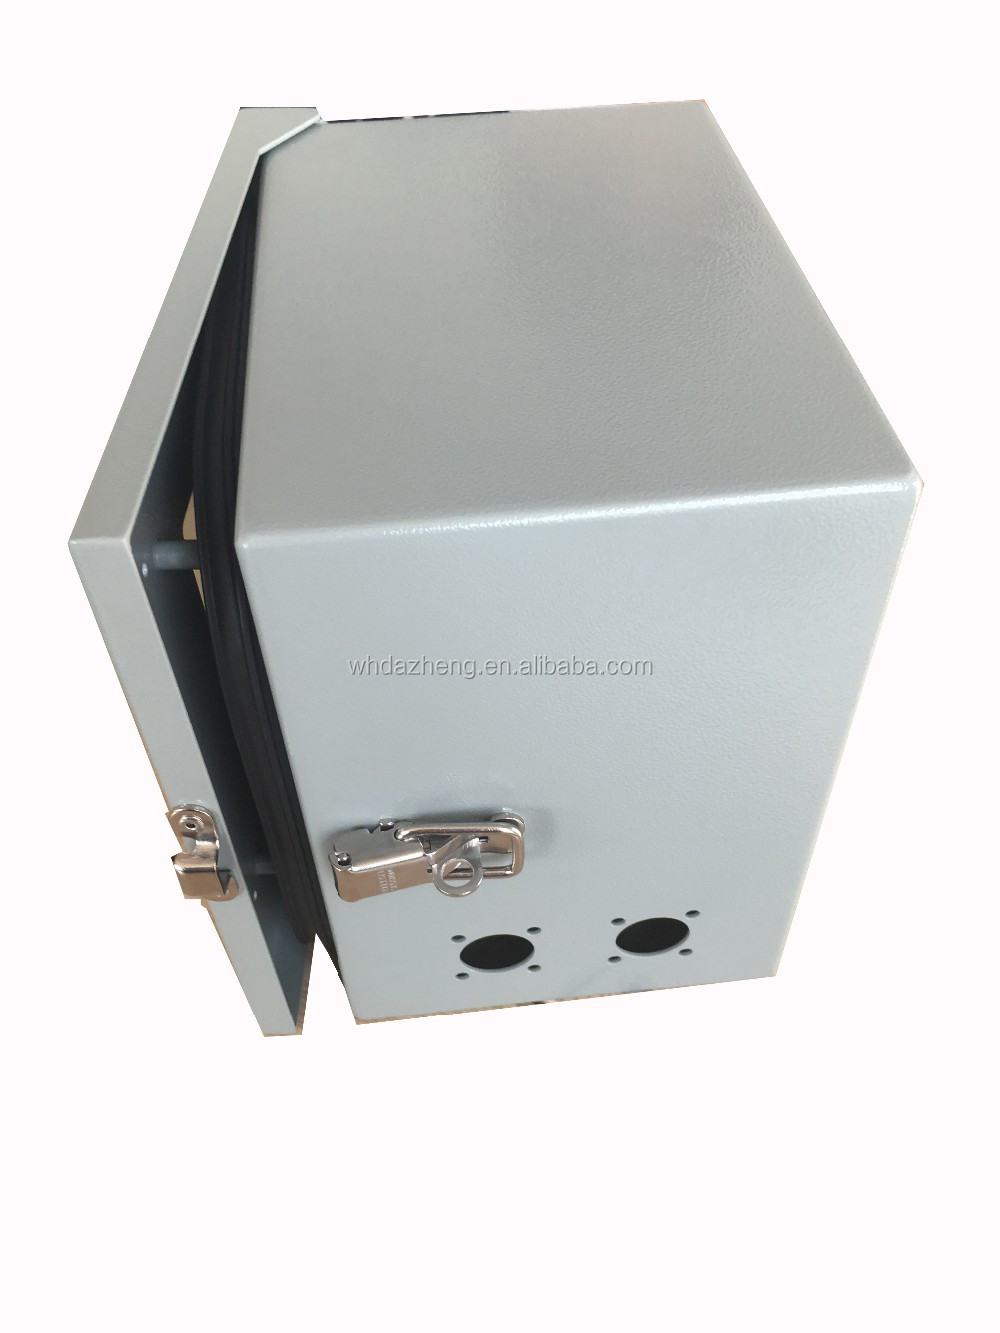 Electric Power Box : Small electric meter panel box power distribution